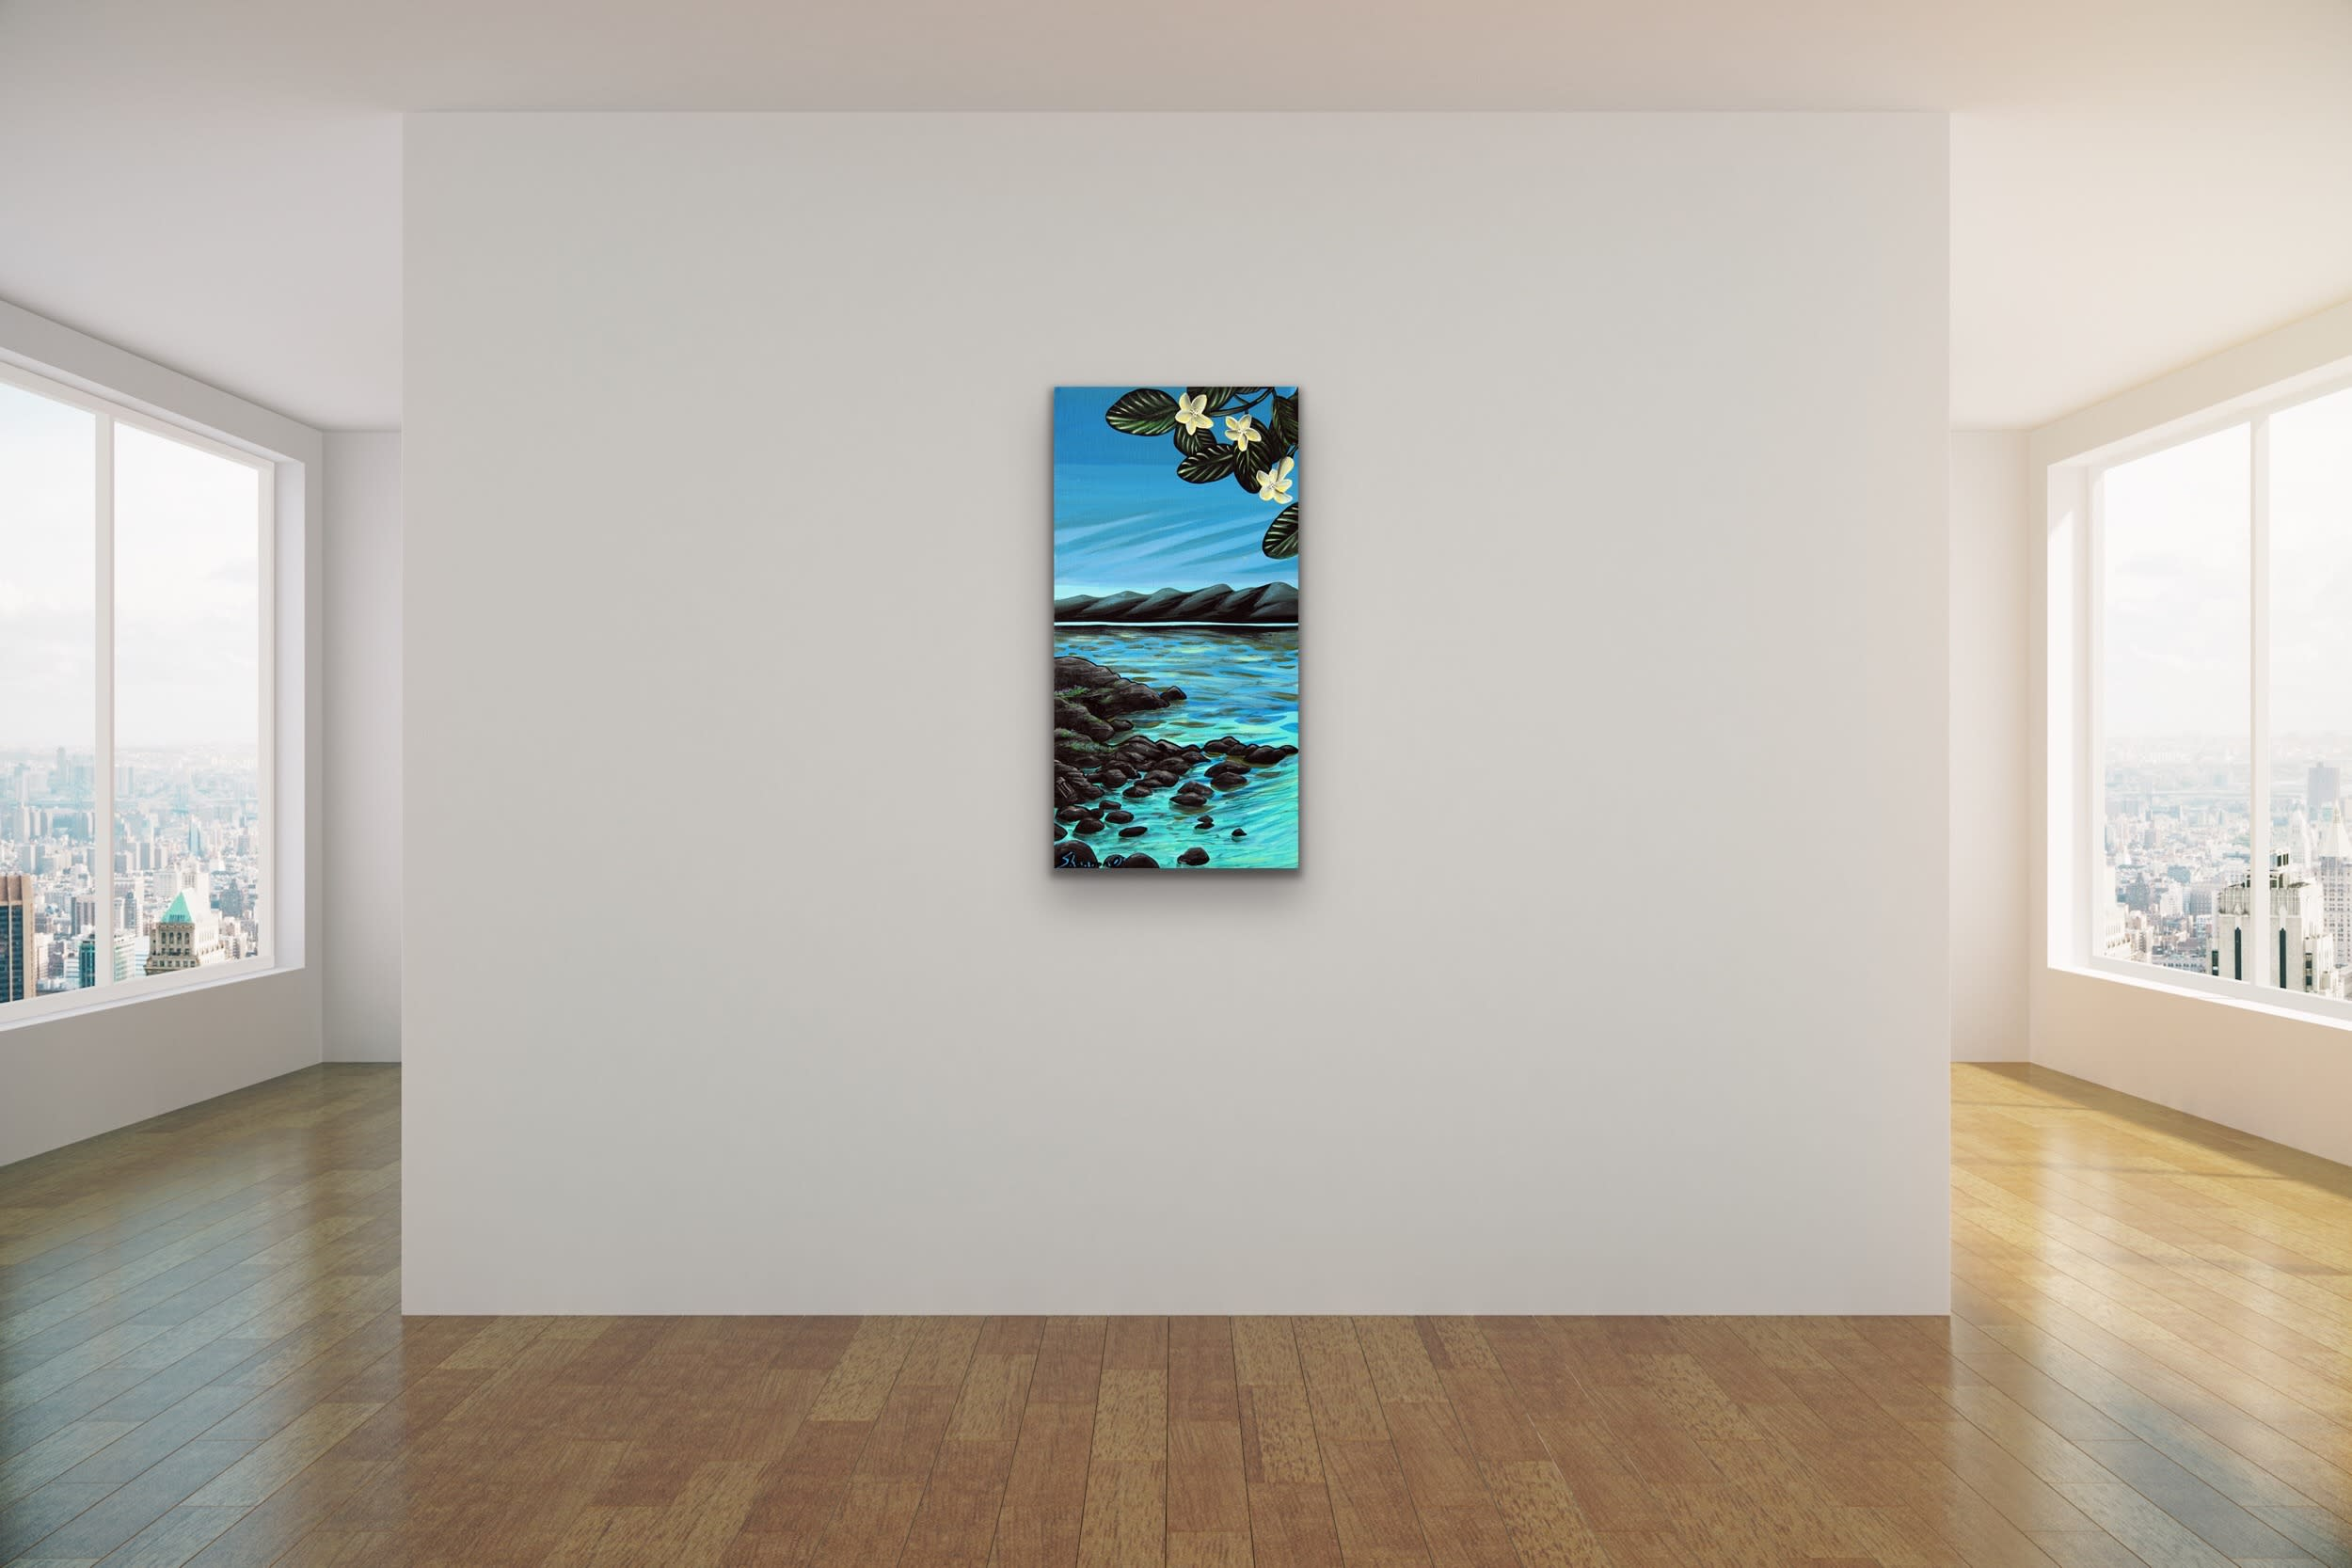 <div class='title'>           Shannon Oconnell Paintings Mock Ups Evo Art Maui Lahain Front Street Gallery Collect Popular Colorful Ocean Flowers Scenery Waves 5         </div>